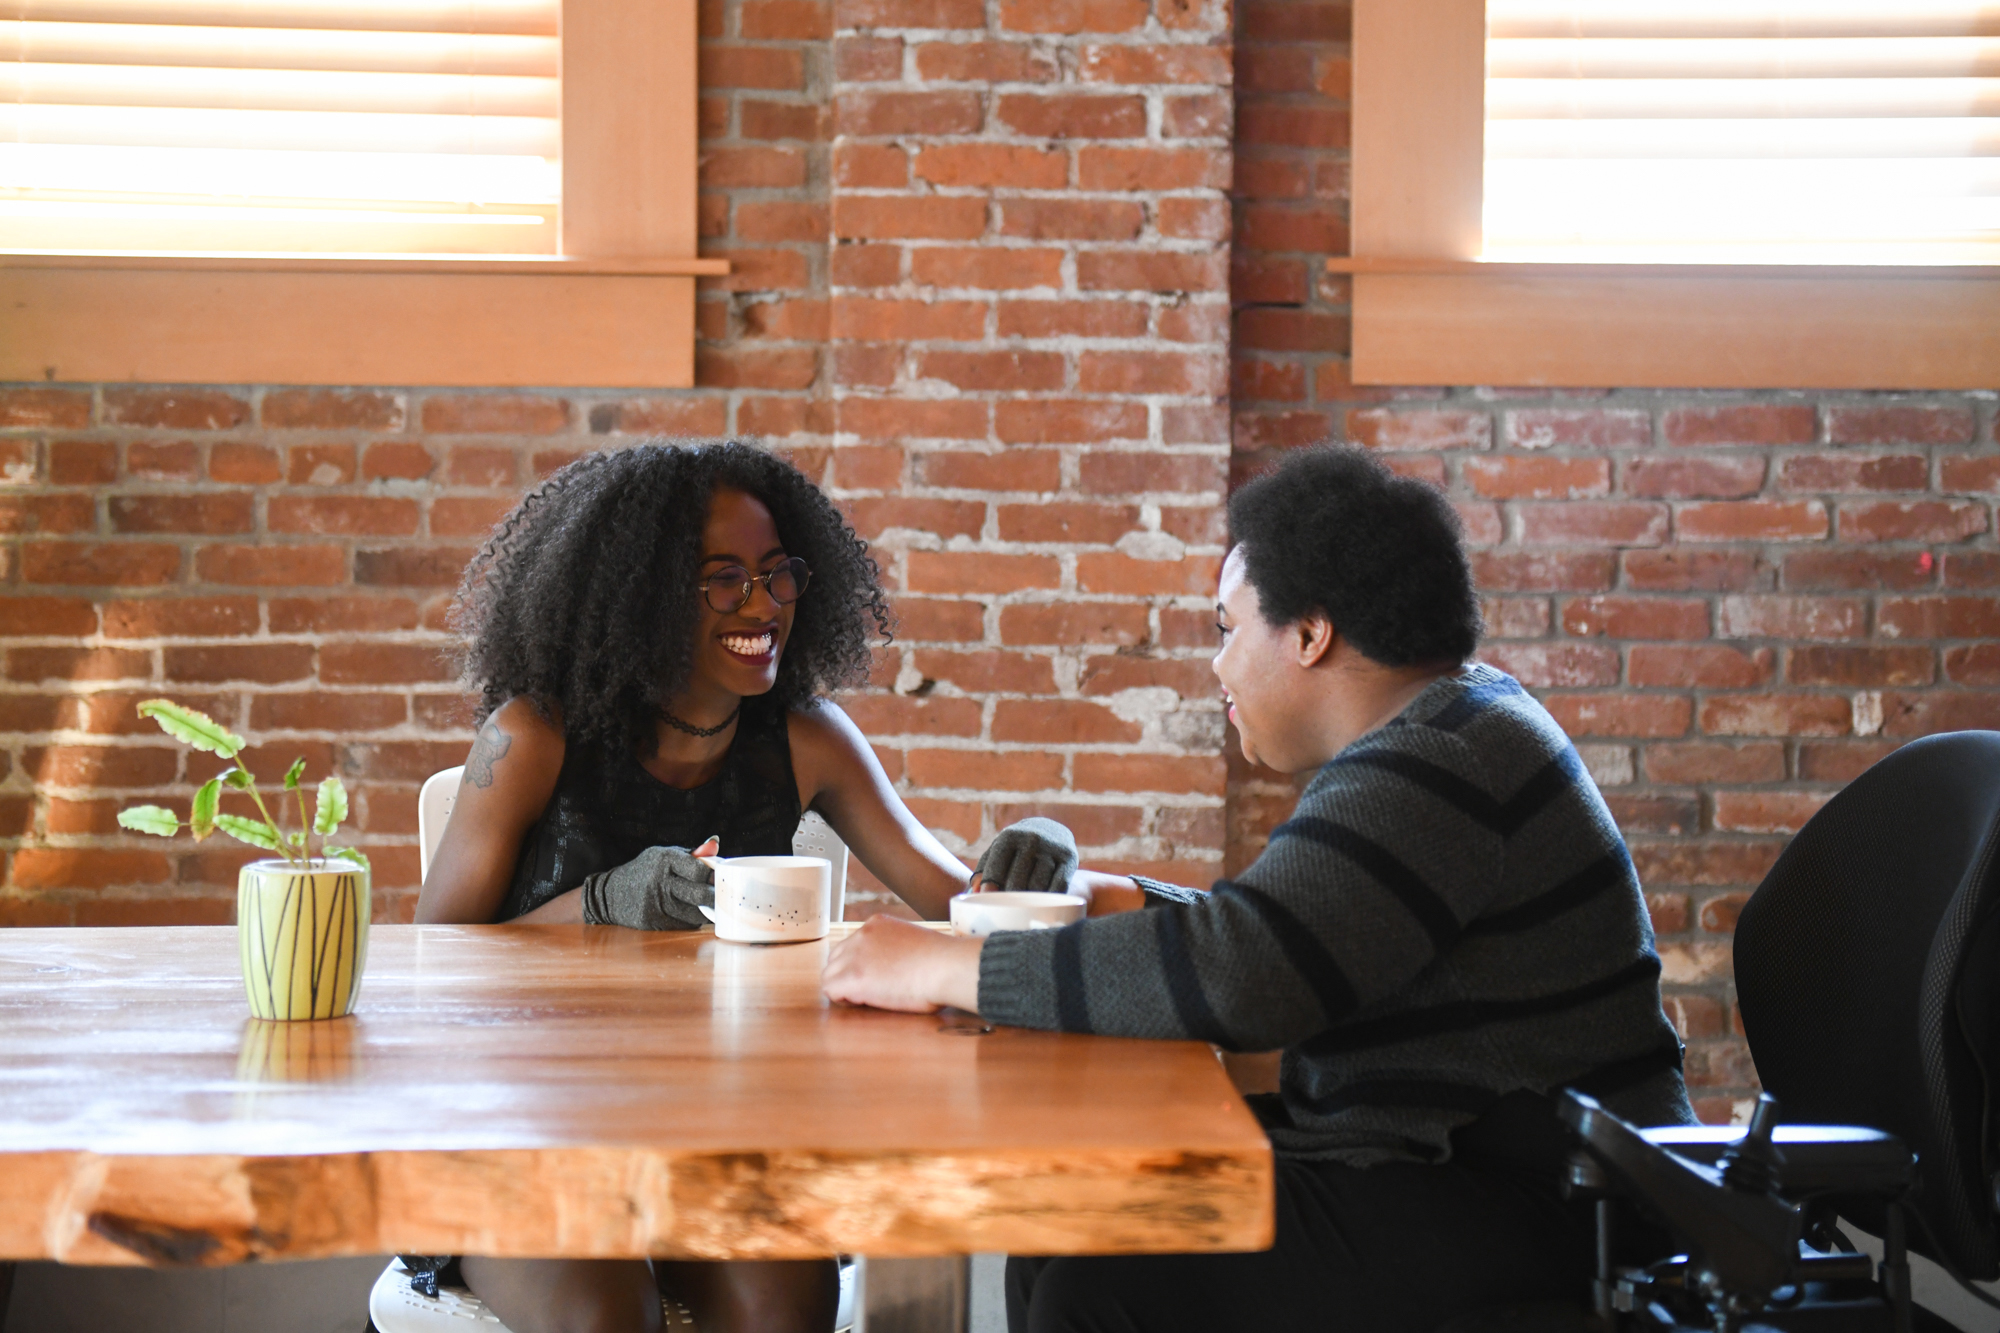 Two disabled Black people (a femme wearing compression gloves and a non-binary person in a power wheelchair that's partially in view) sit across each other and laugh while on a coffee date in a brick building.